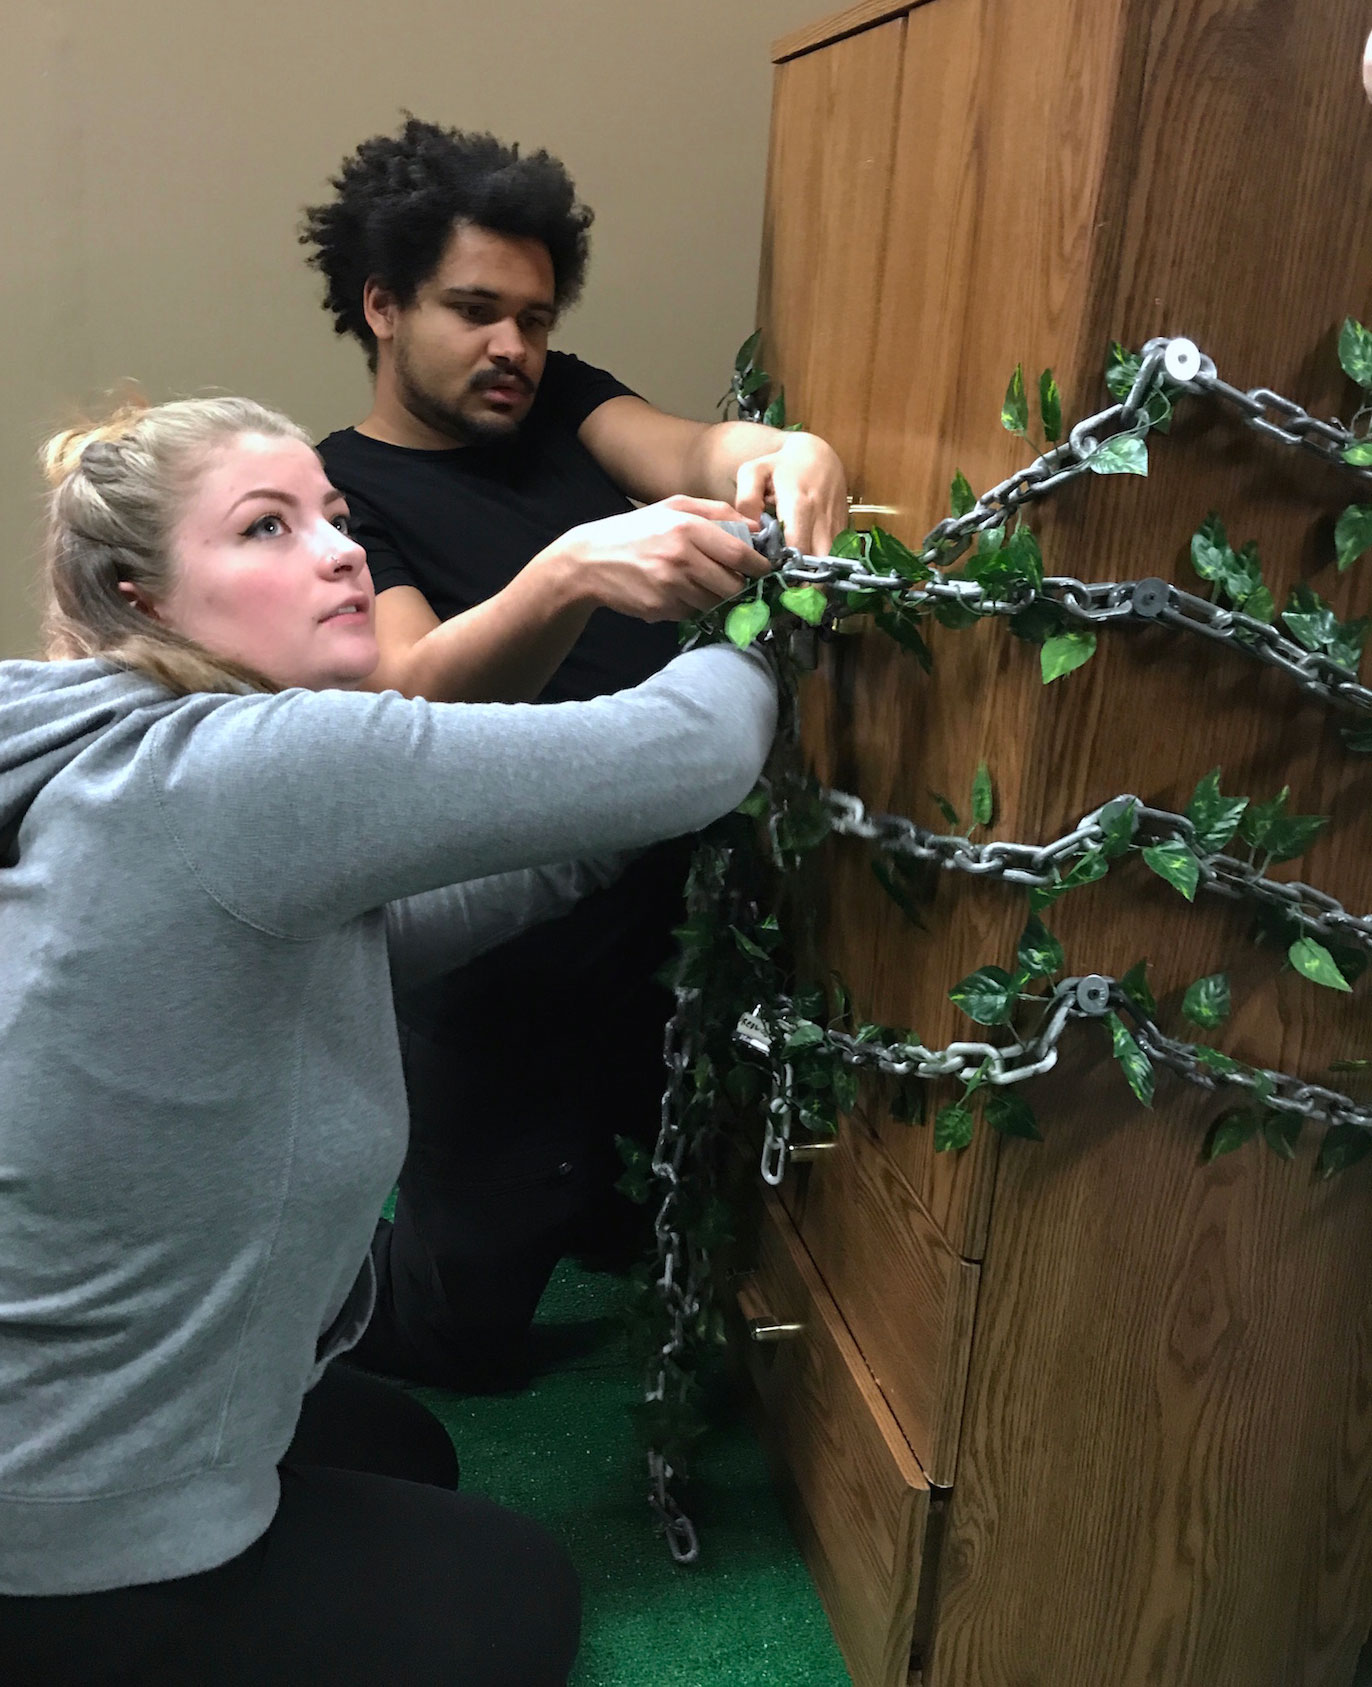 Two students work on cabinet locked with chains